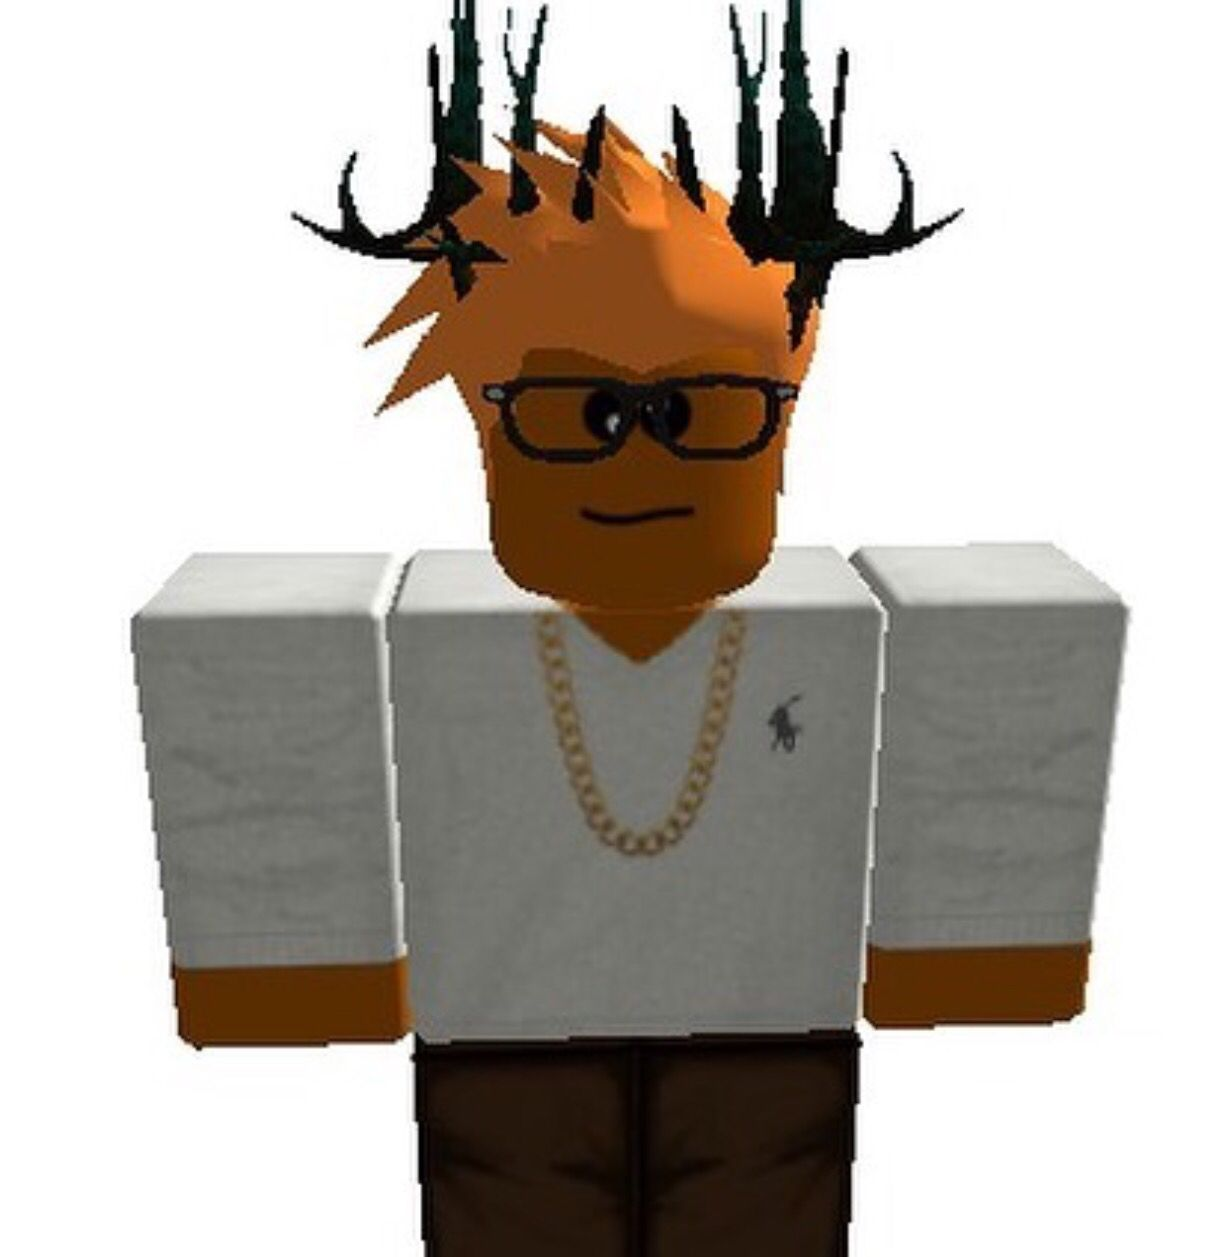 This Is Meh Roblox Avatar I Am Making A Whole Thing Of My Roblox